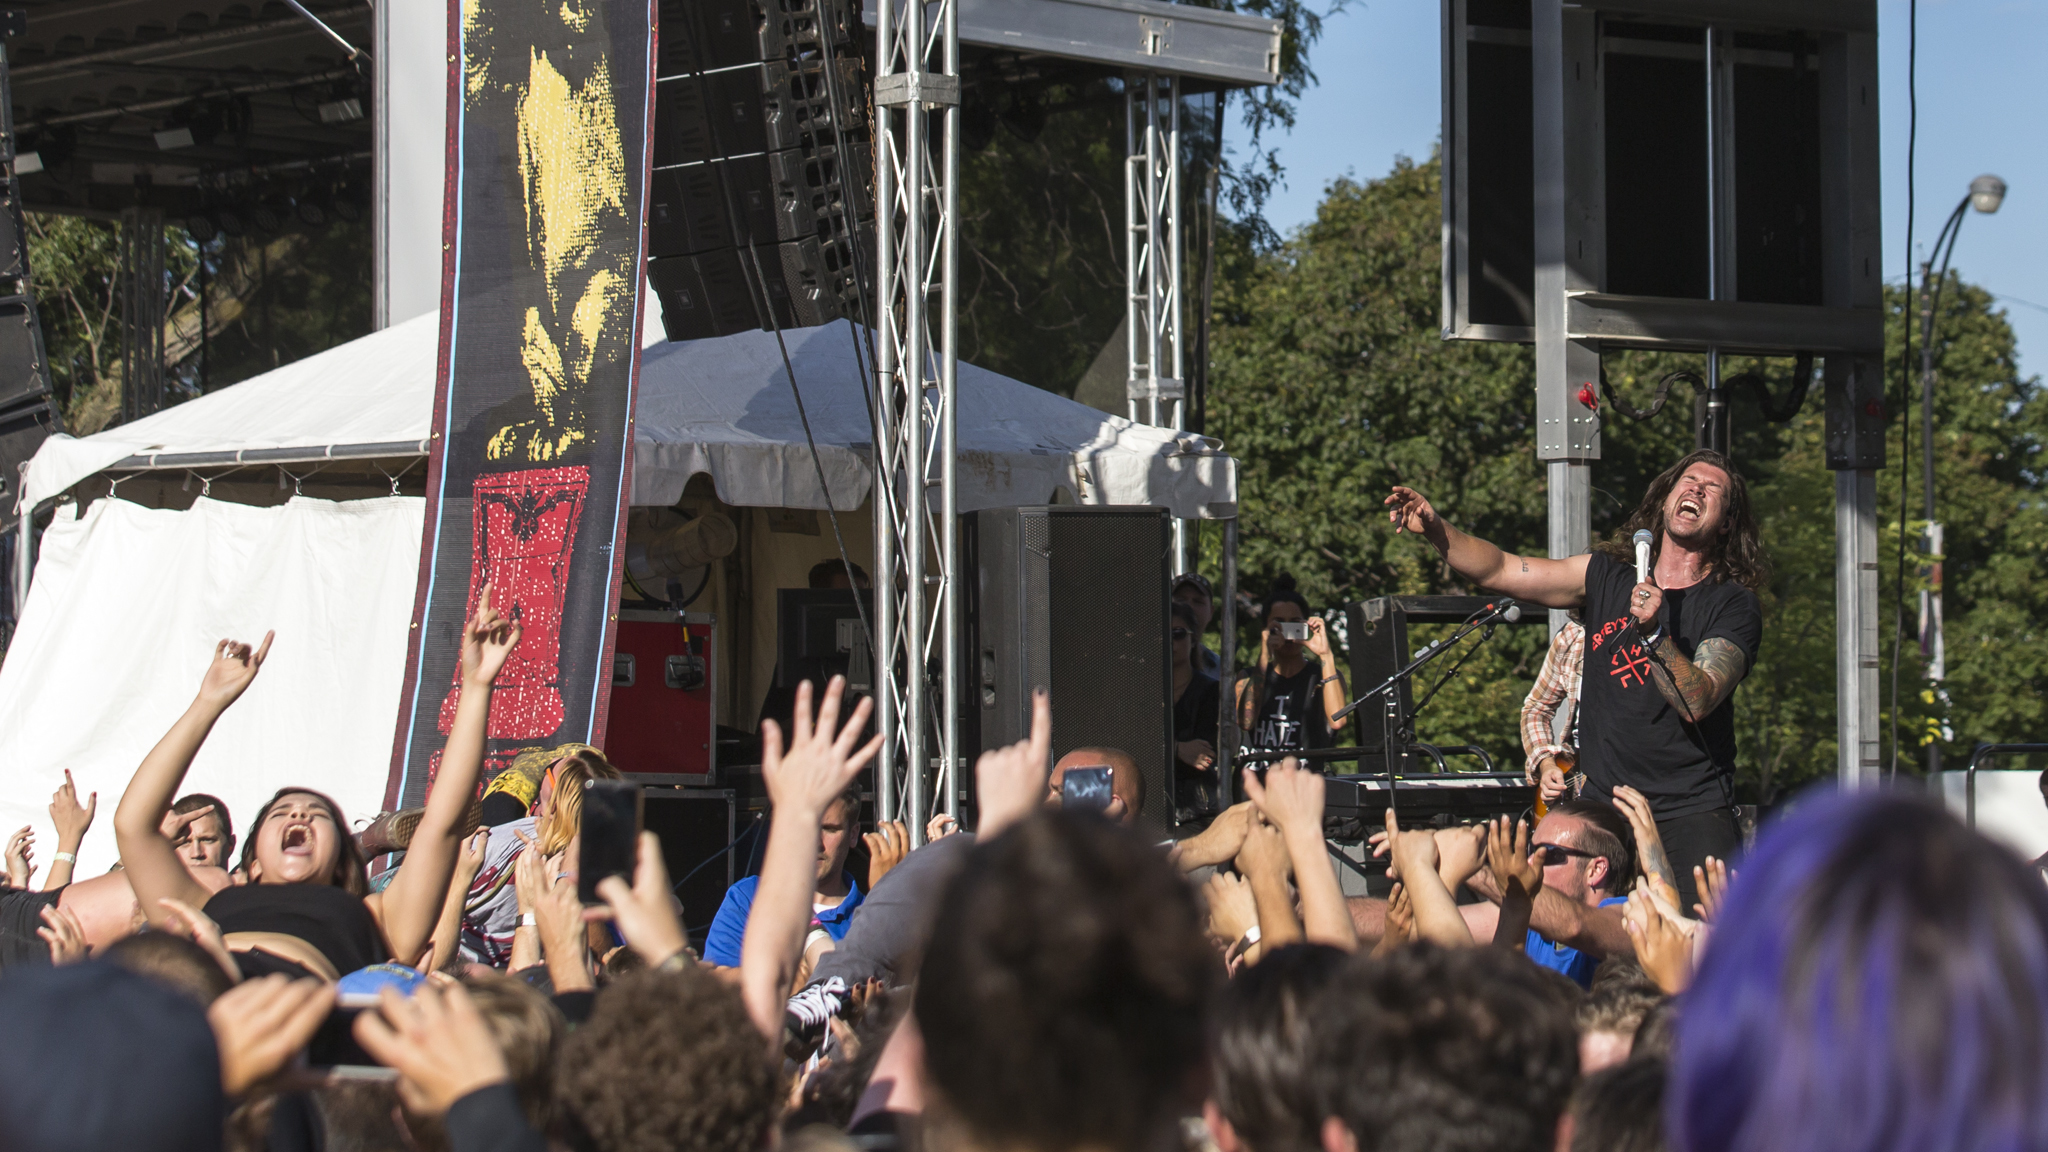 Taking Back Sunday turned in a set on the final day of Riot Fest, September 13, 2015.